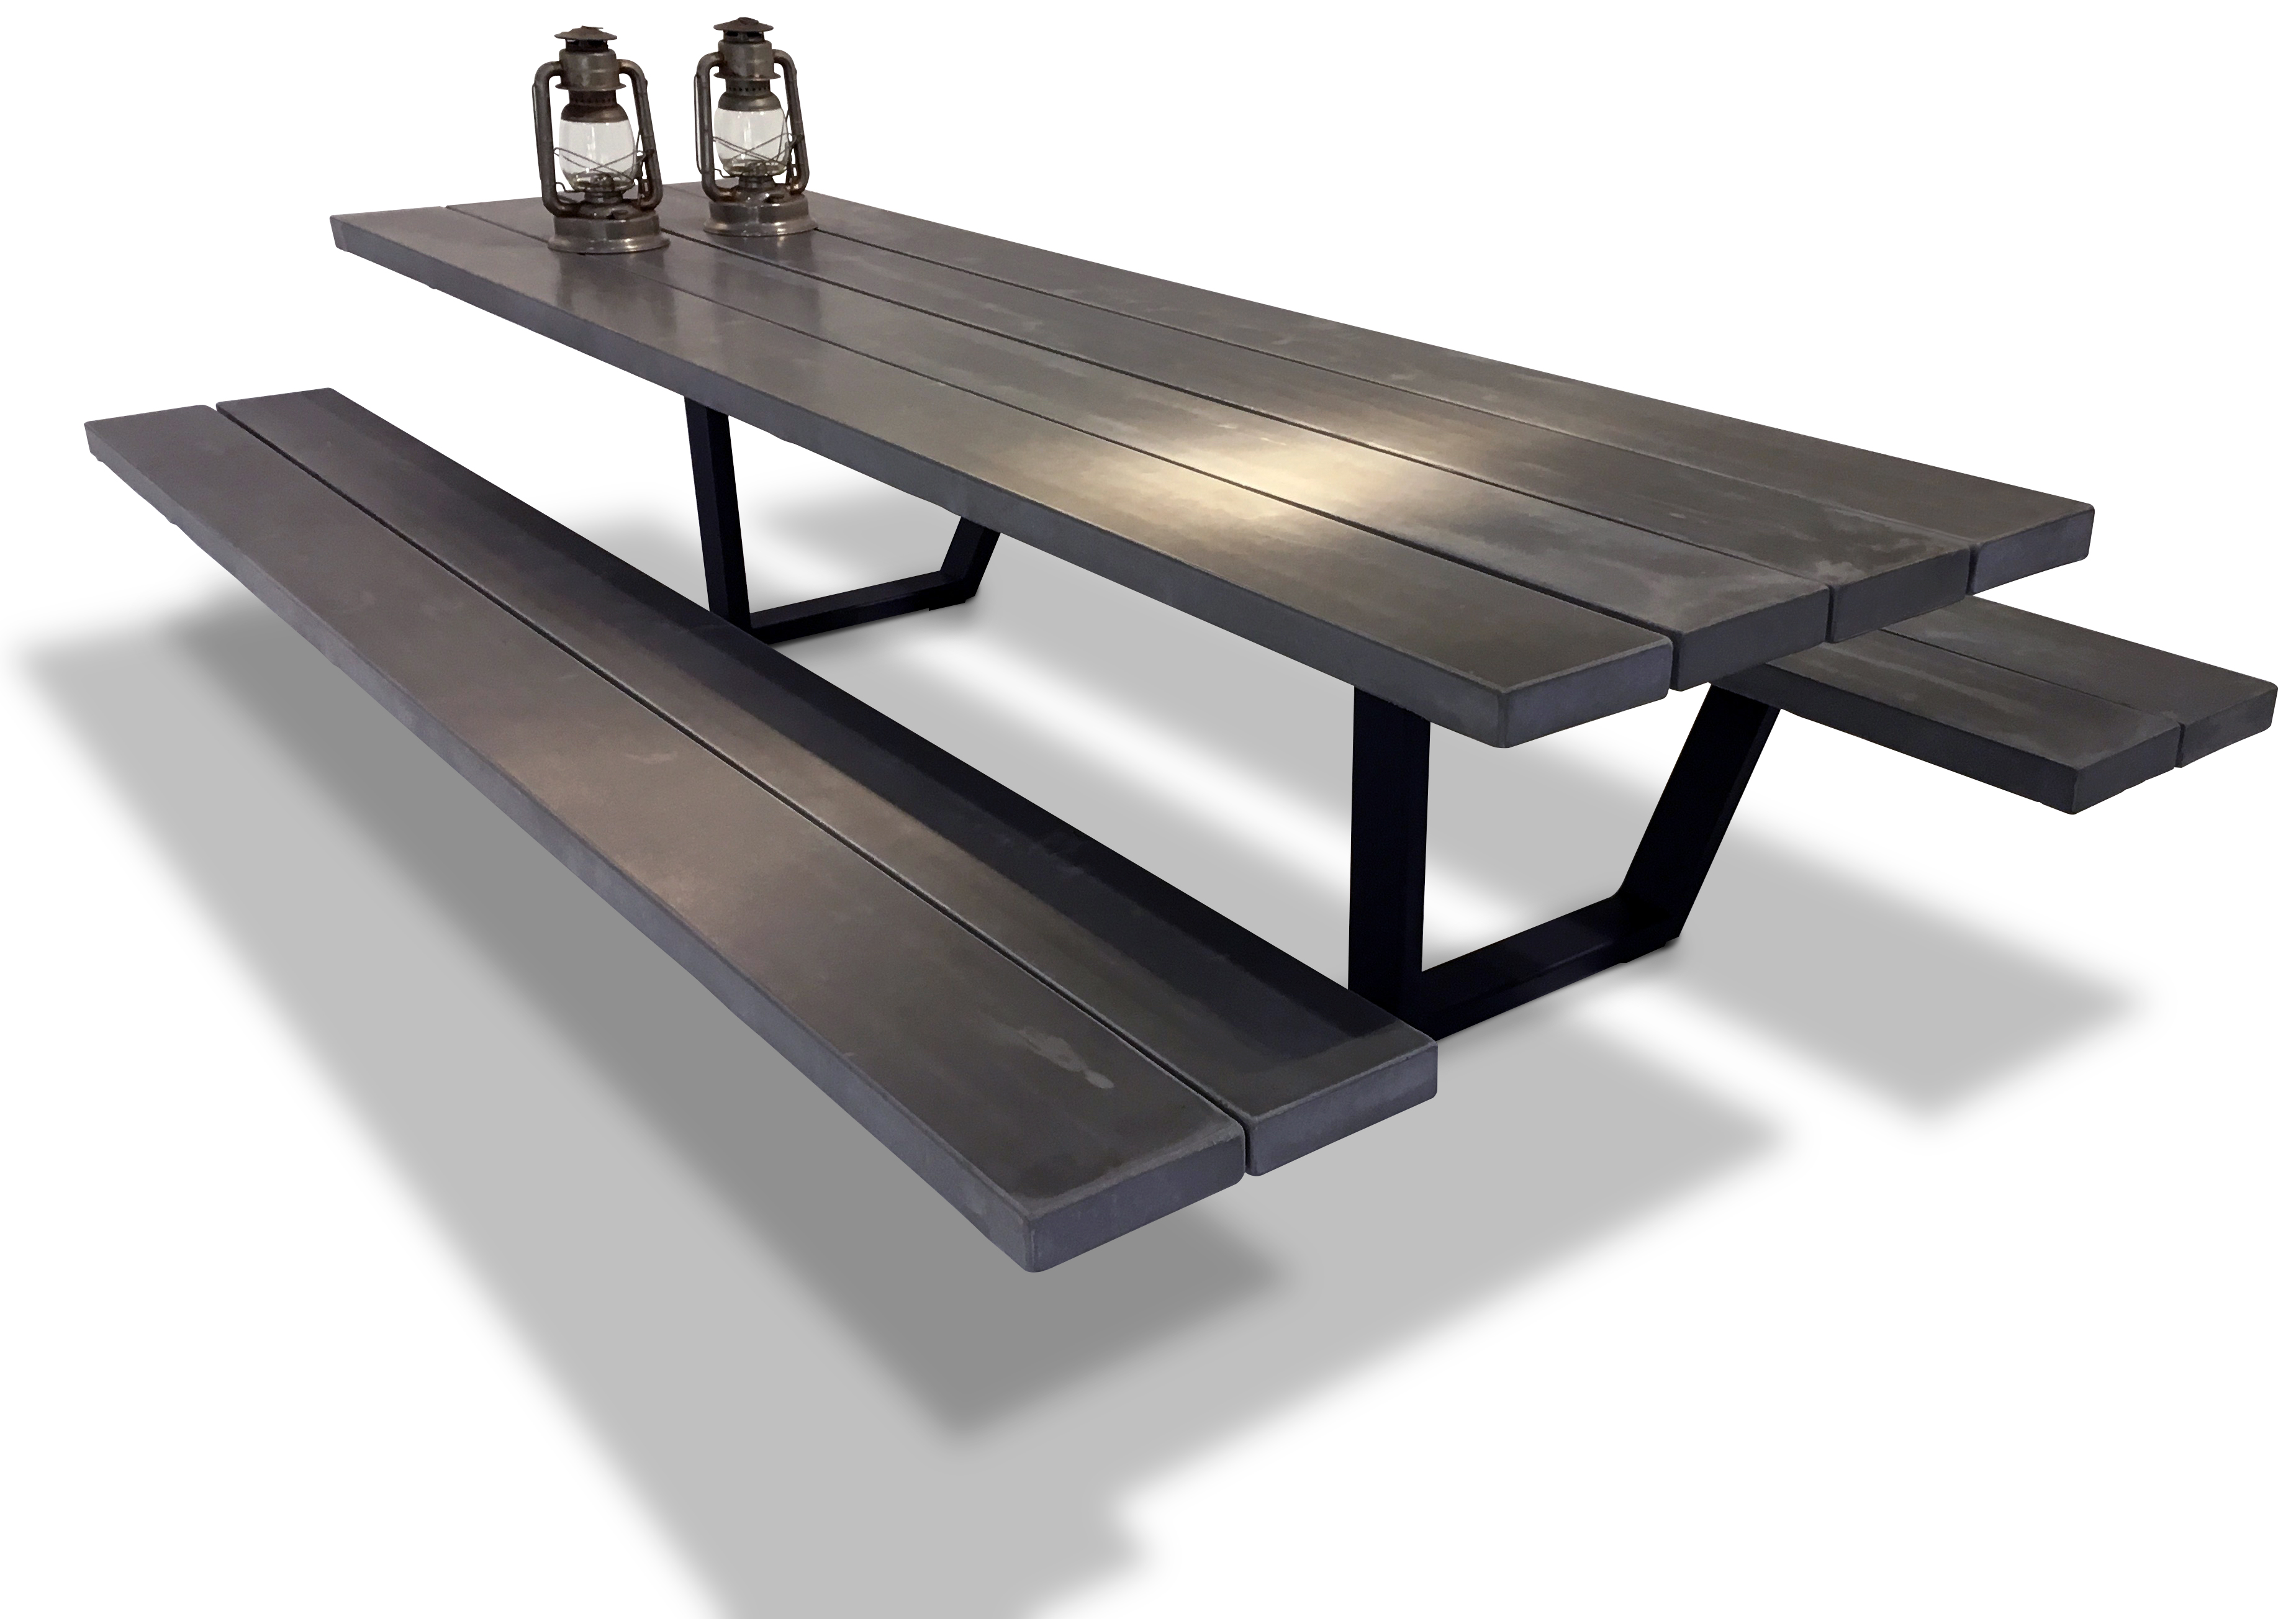 cassecroute table concrete picnic table cassecroute. Black Bedroom Furniture Sets. Home Design Ideas